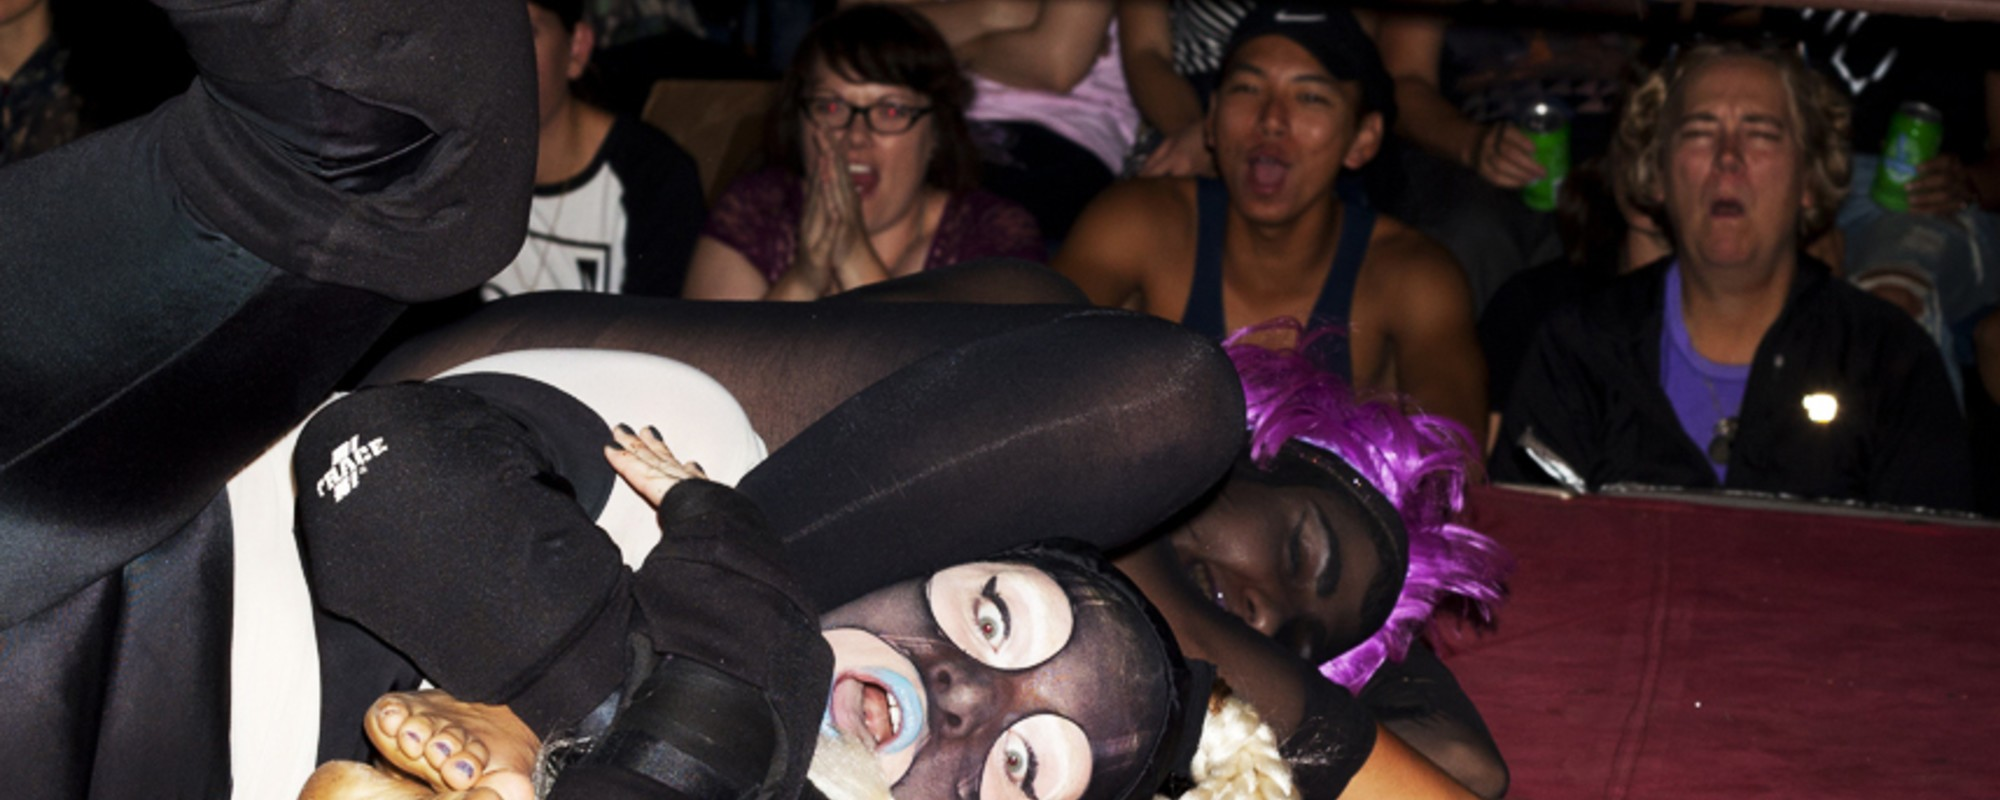 Photos of Toronto's League of Lady Wrestlers